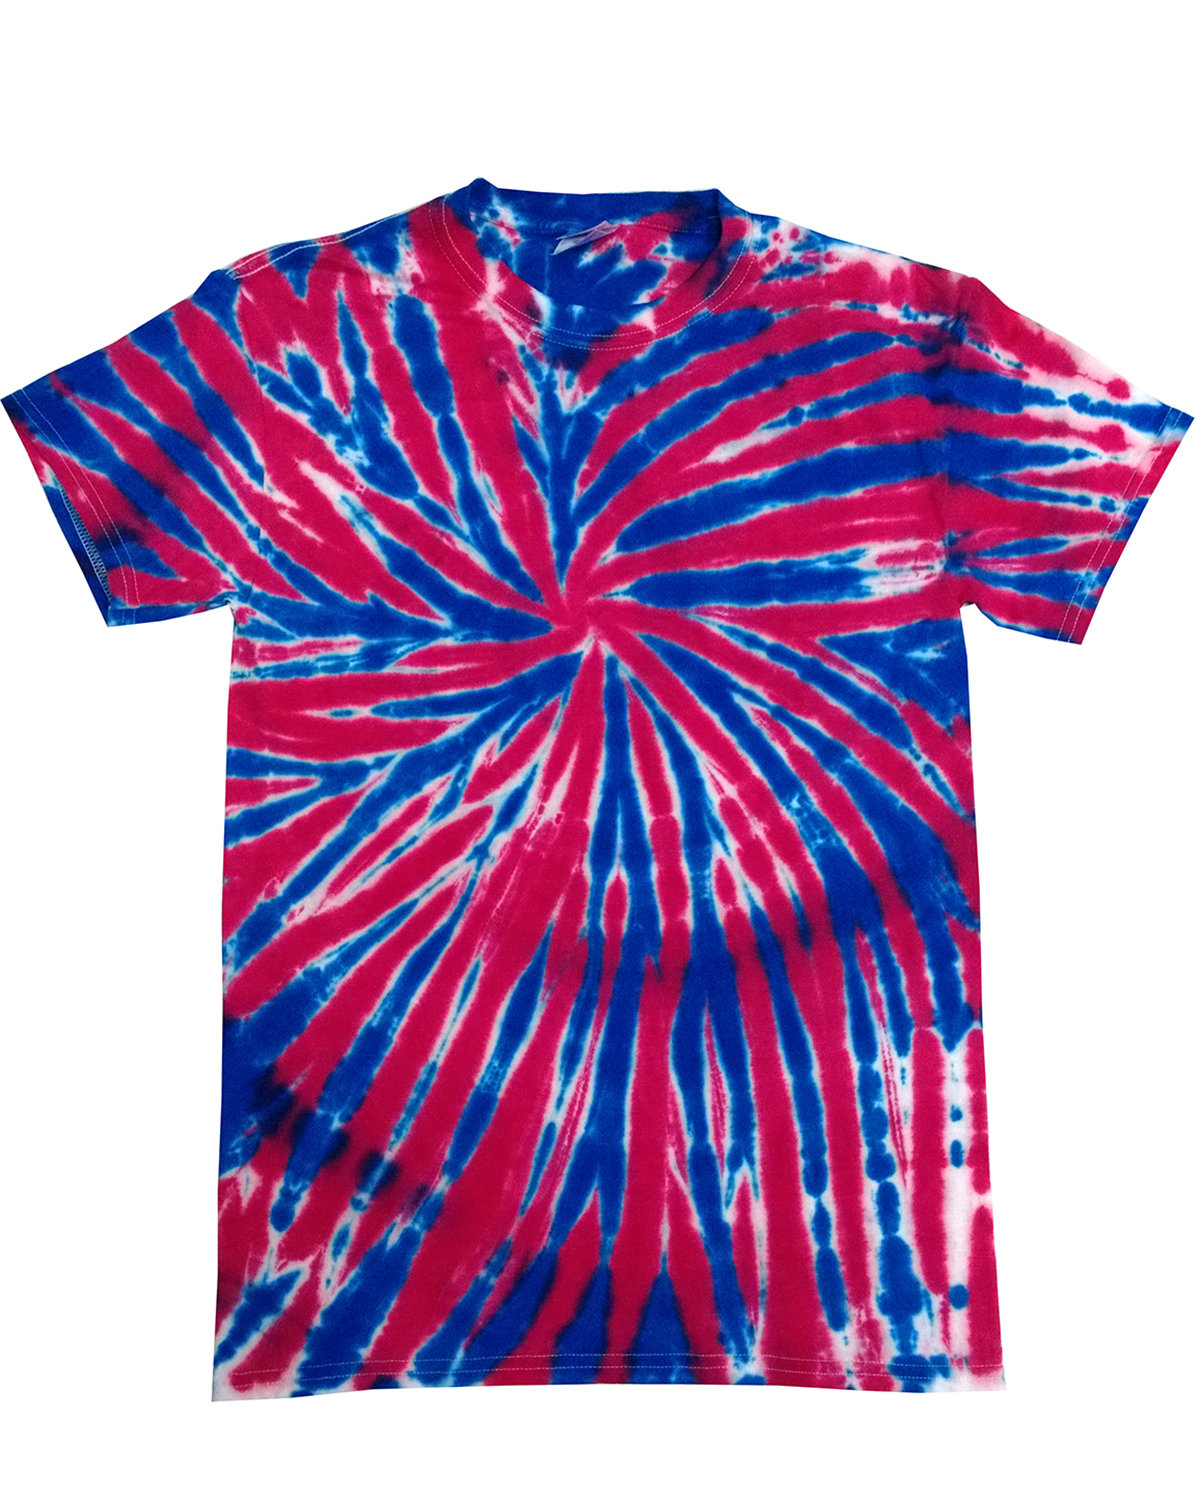 Tie-Dye Adult 5.4 oz., 100% Cotton T-Shirt UNION JACK